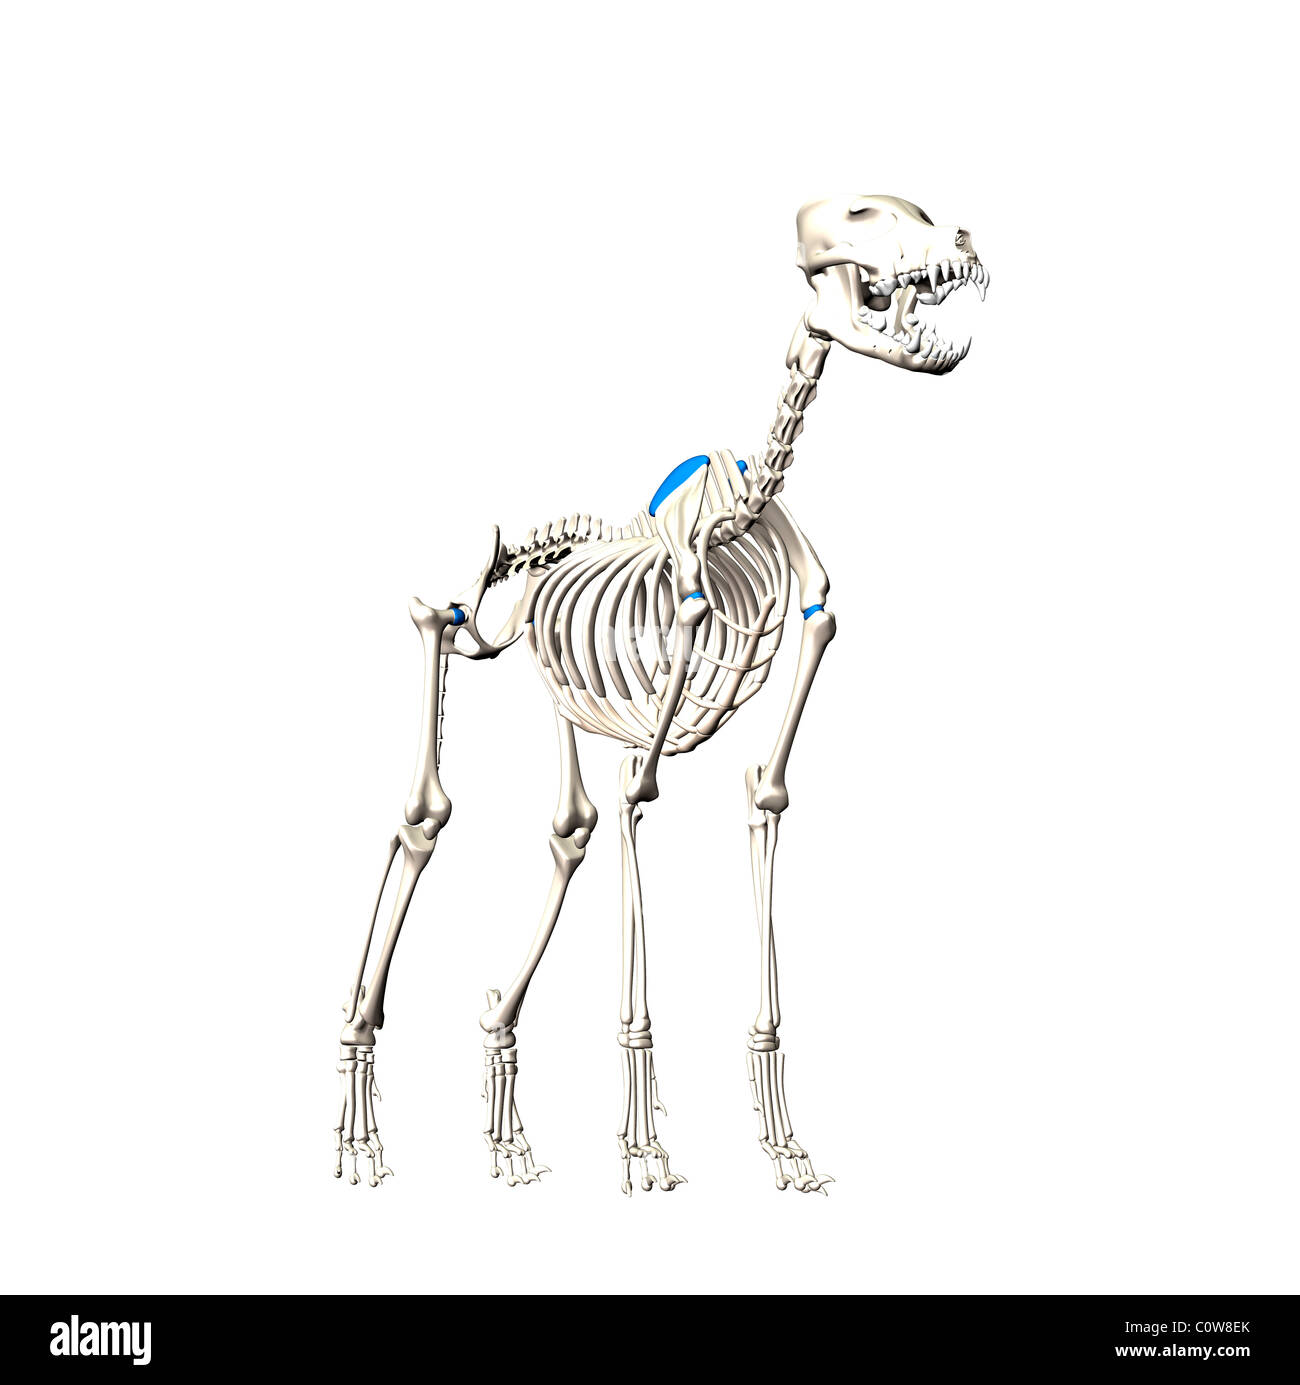 Dog Skeleton Stock Photos & Dog Skeleton Stock Images - Alamy